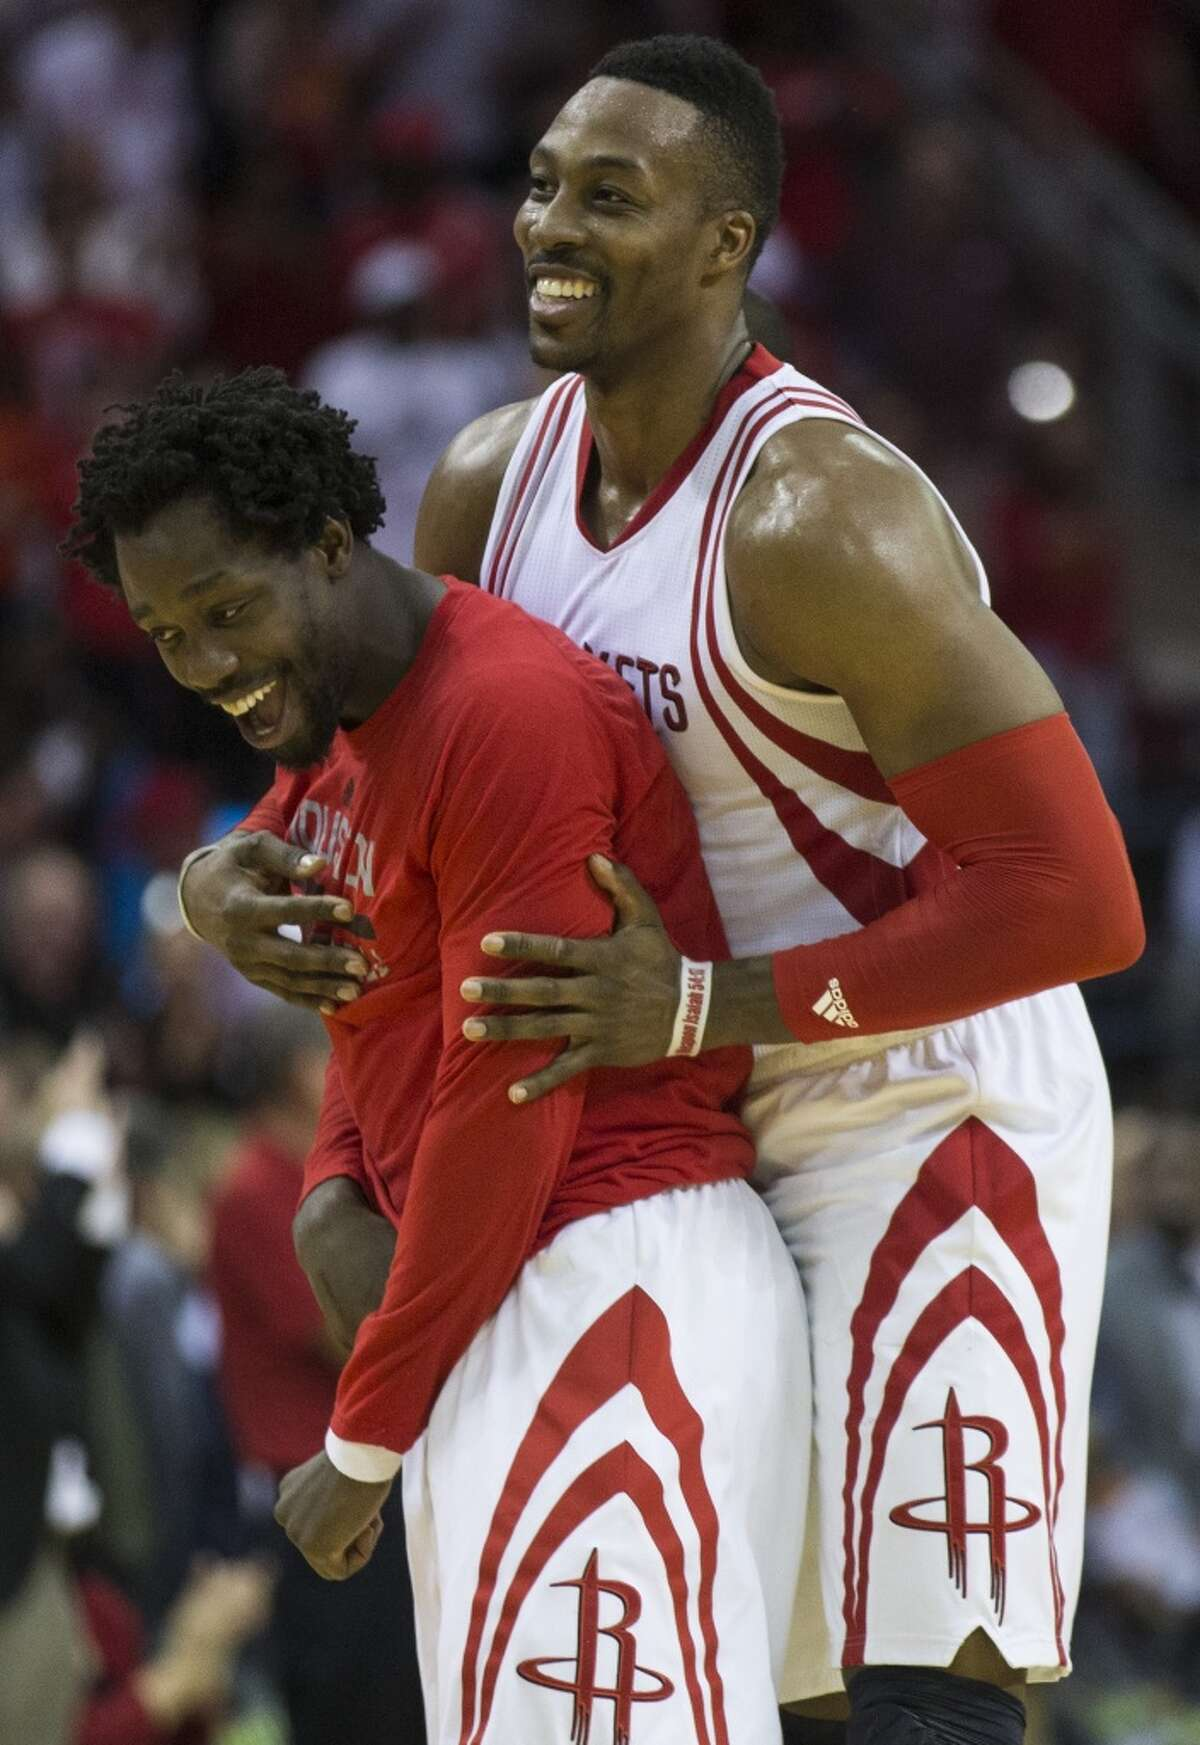 Houston Rockets center Dwight Howard (12) and Houston Rockets guard Patrick Beverley (2) embrace after Howard hit a pair of free throws near the end of the fourth quarter as the Rockets beat the Oklahoma City Thunder 110-105 at Toyota Center Monday, Nov. 2, 2015, in Houston. ( Brett Coomer / Houston Chronicle )